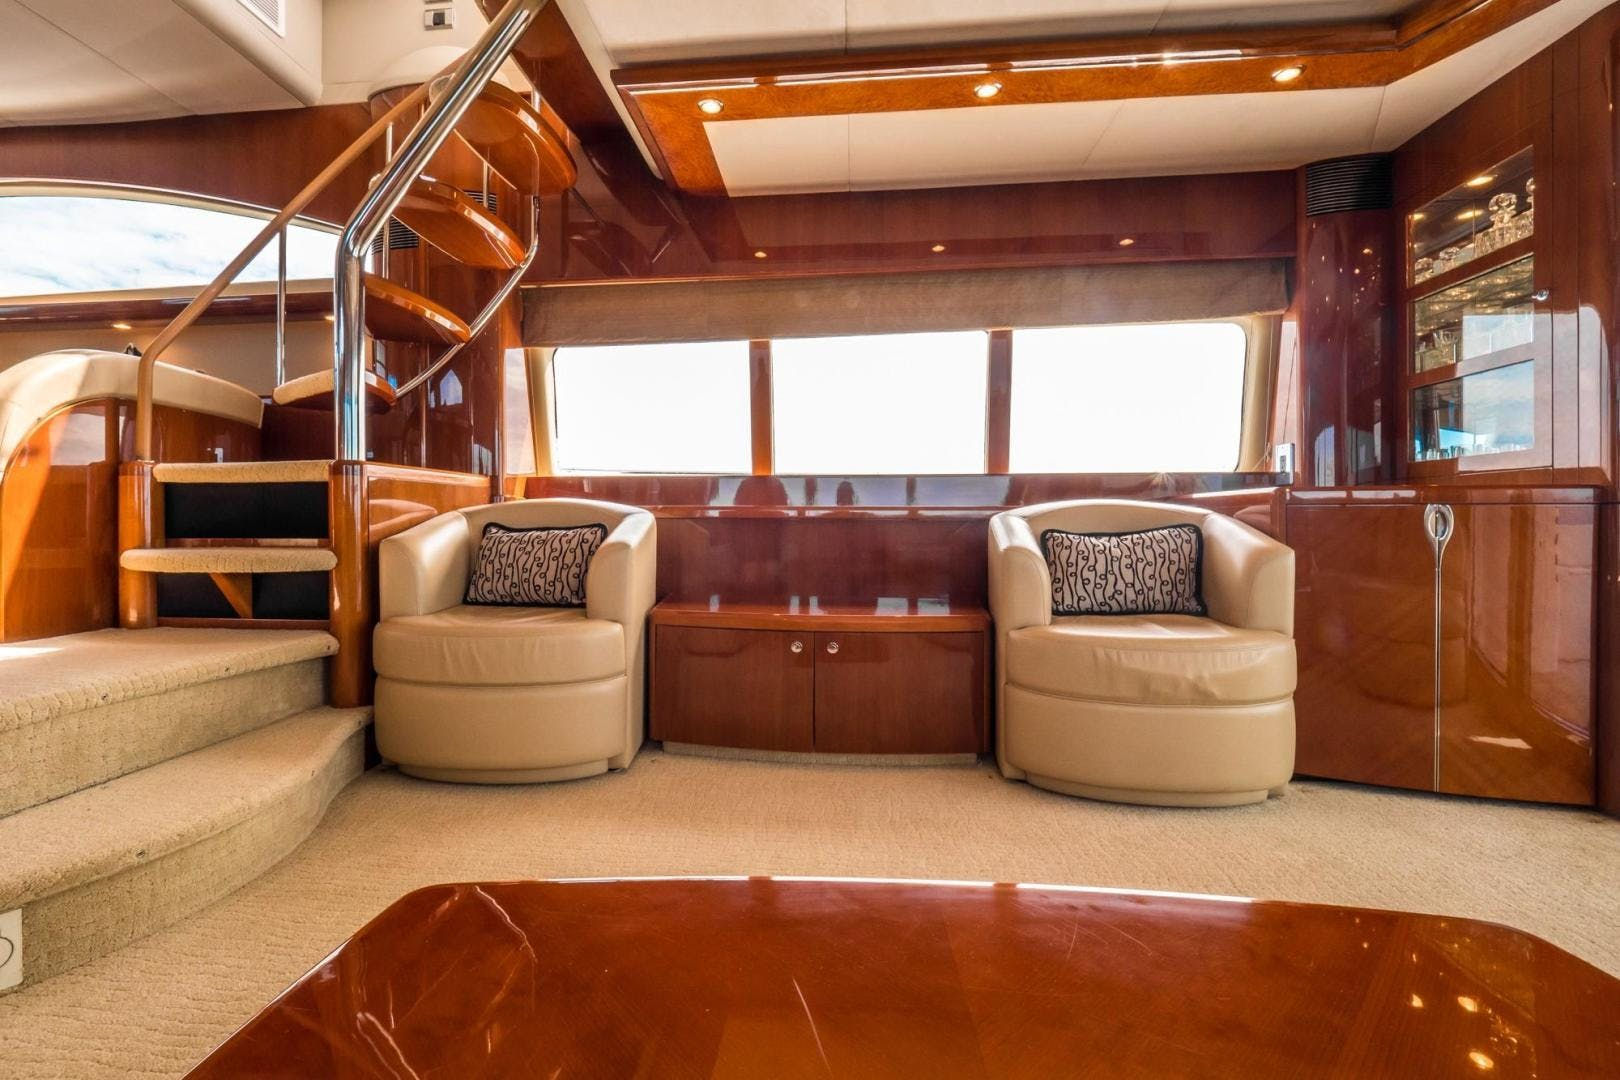 2008 Viking Sport Cruisers 75' 75 Motor Yacht Silver Lining | Picture 8 of 52